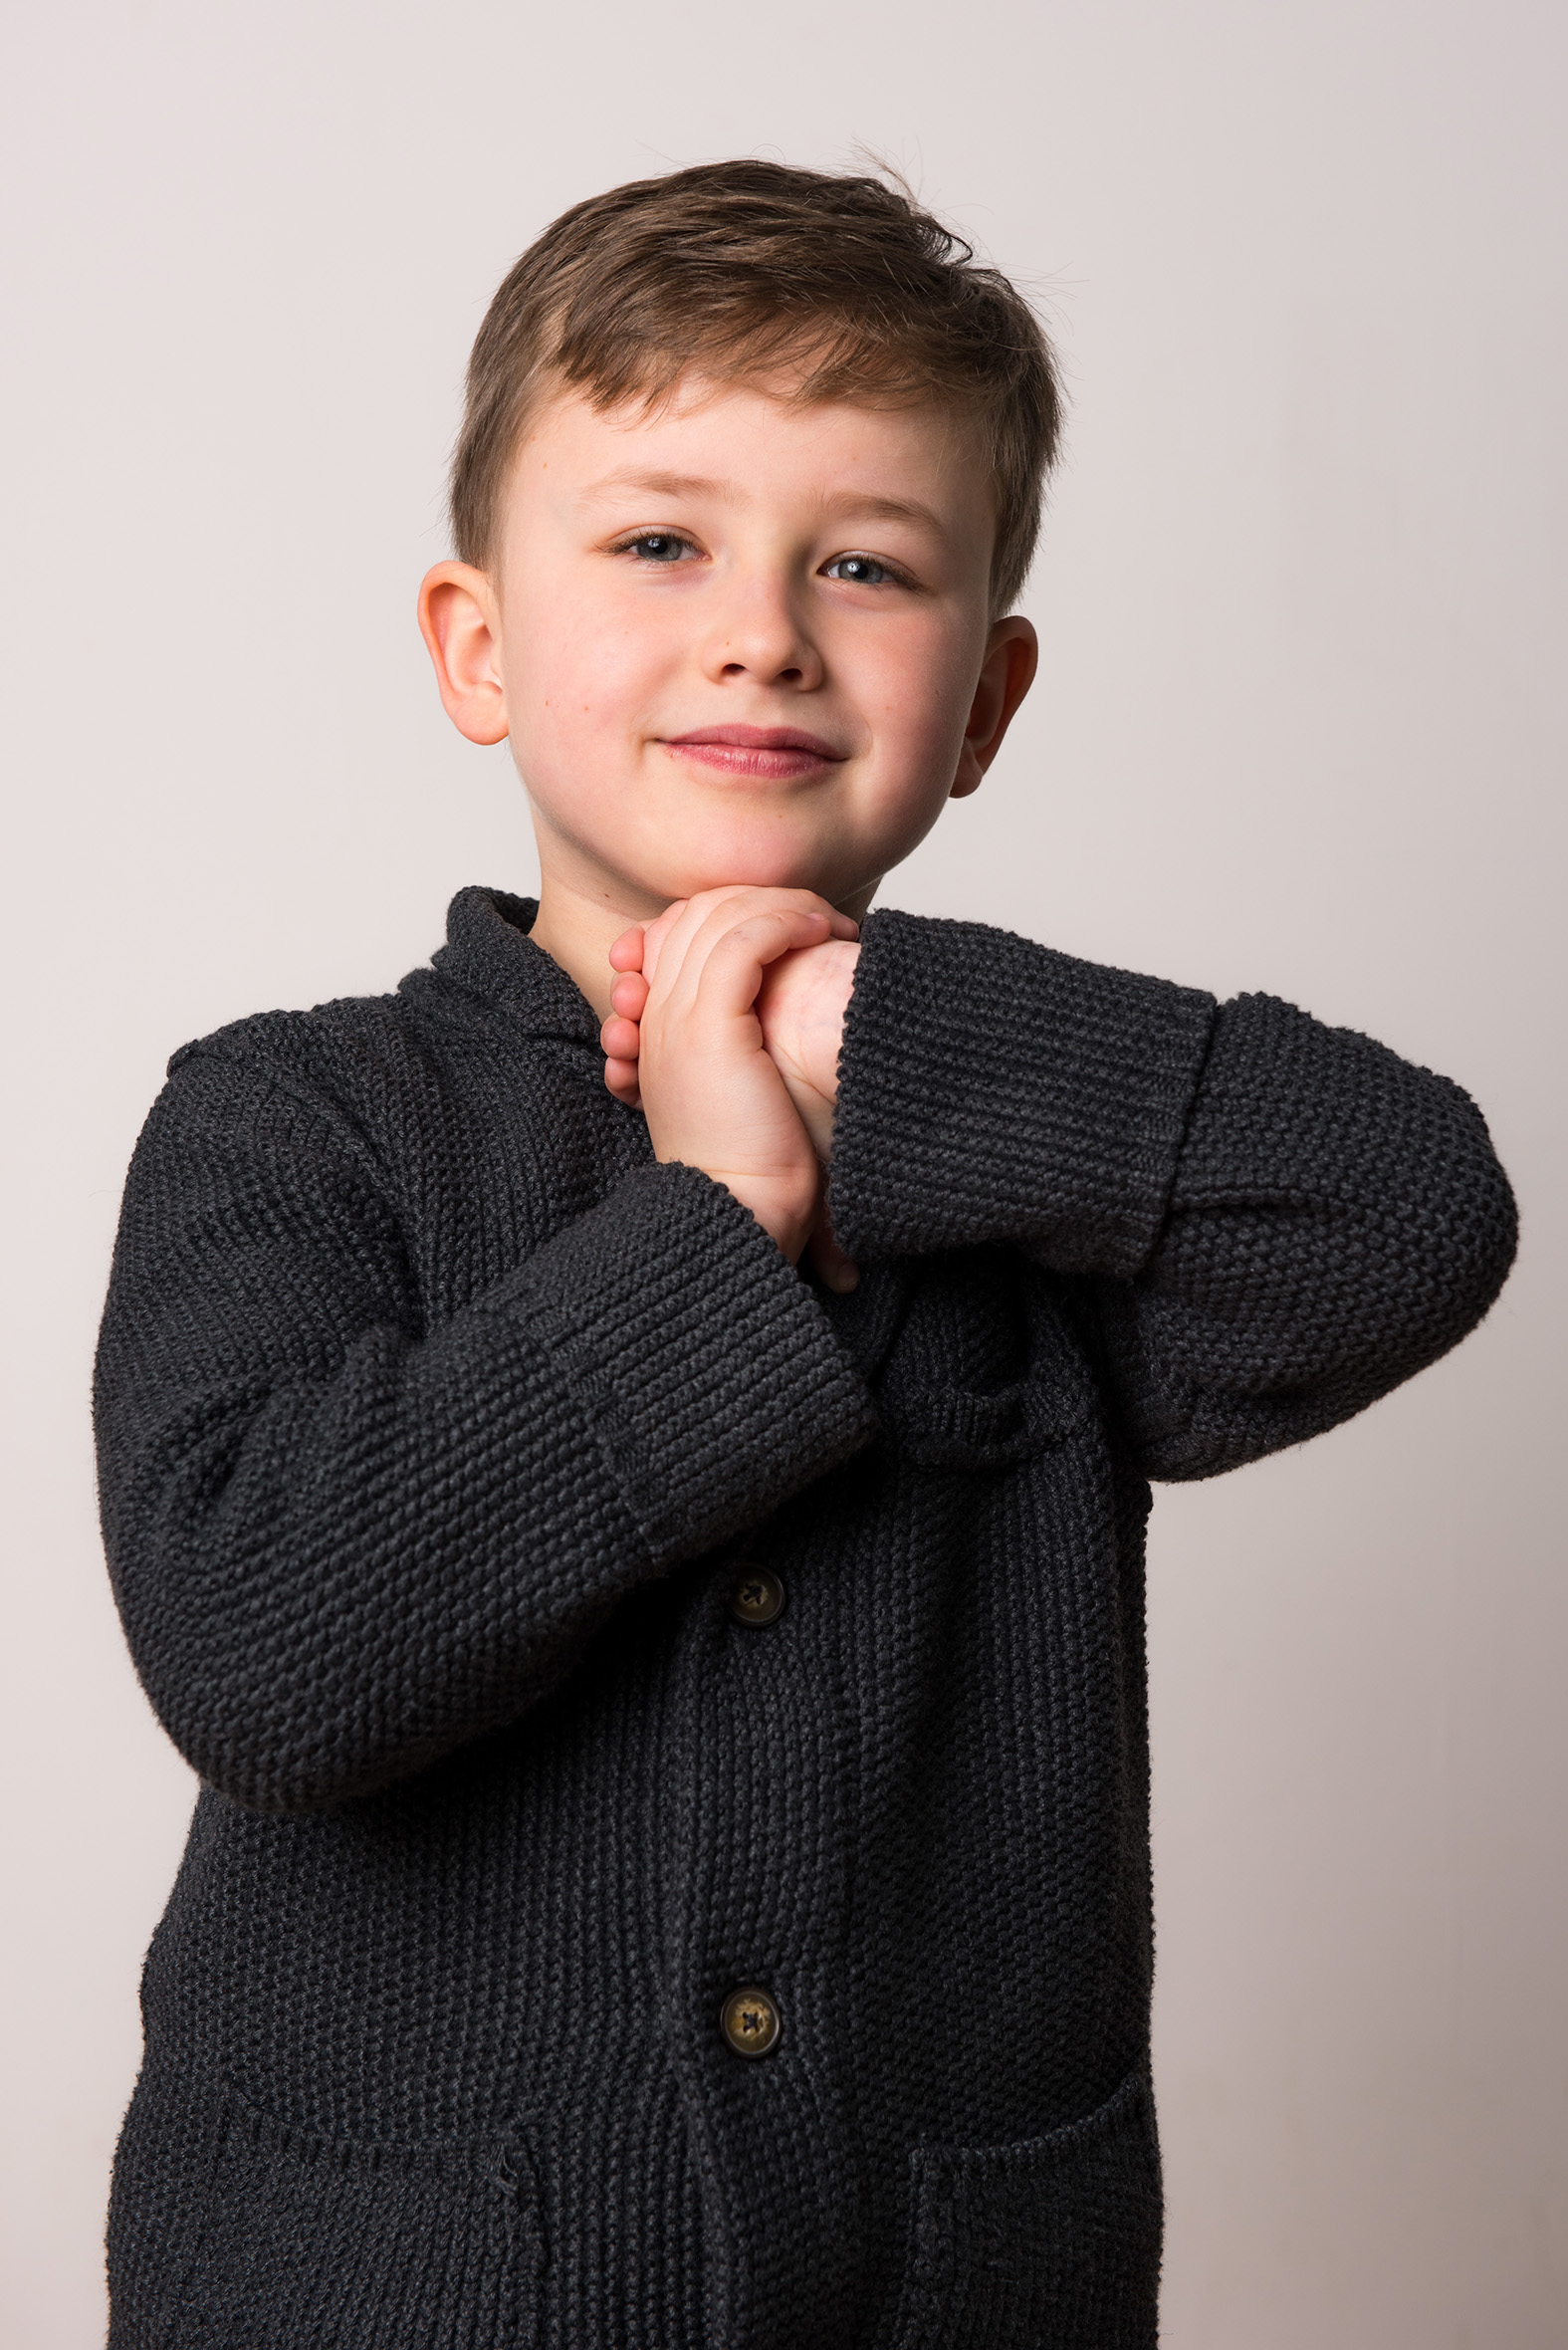 Stamford, Cerebral Palsy, Zebedee Management, disabled, model agency, disability, Boy (7)